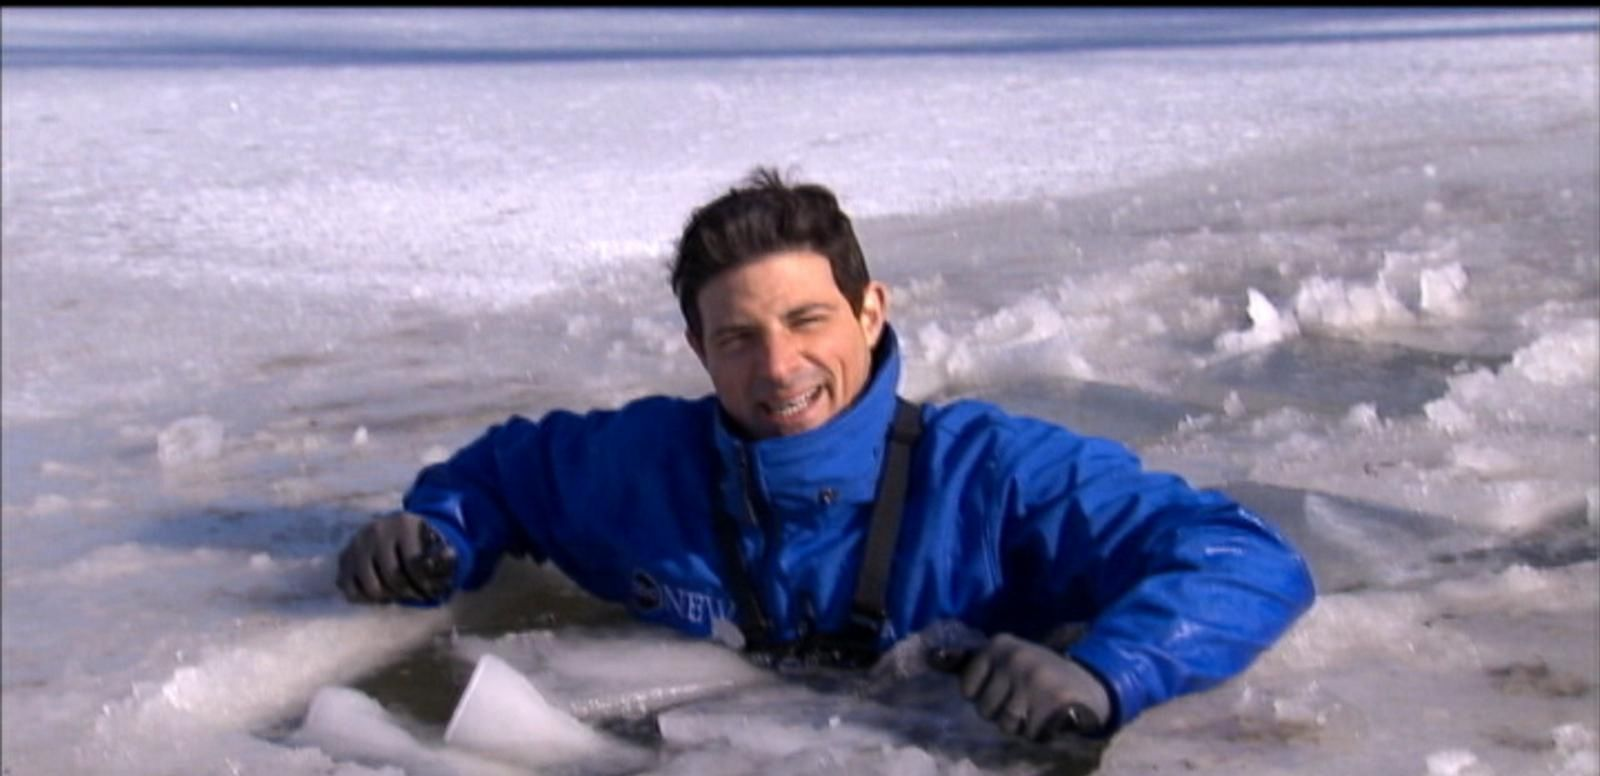 VIDEO: How to Survive Falling Through Ice